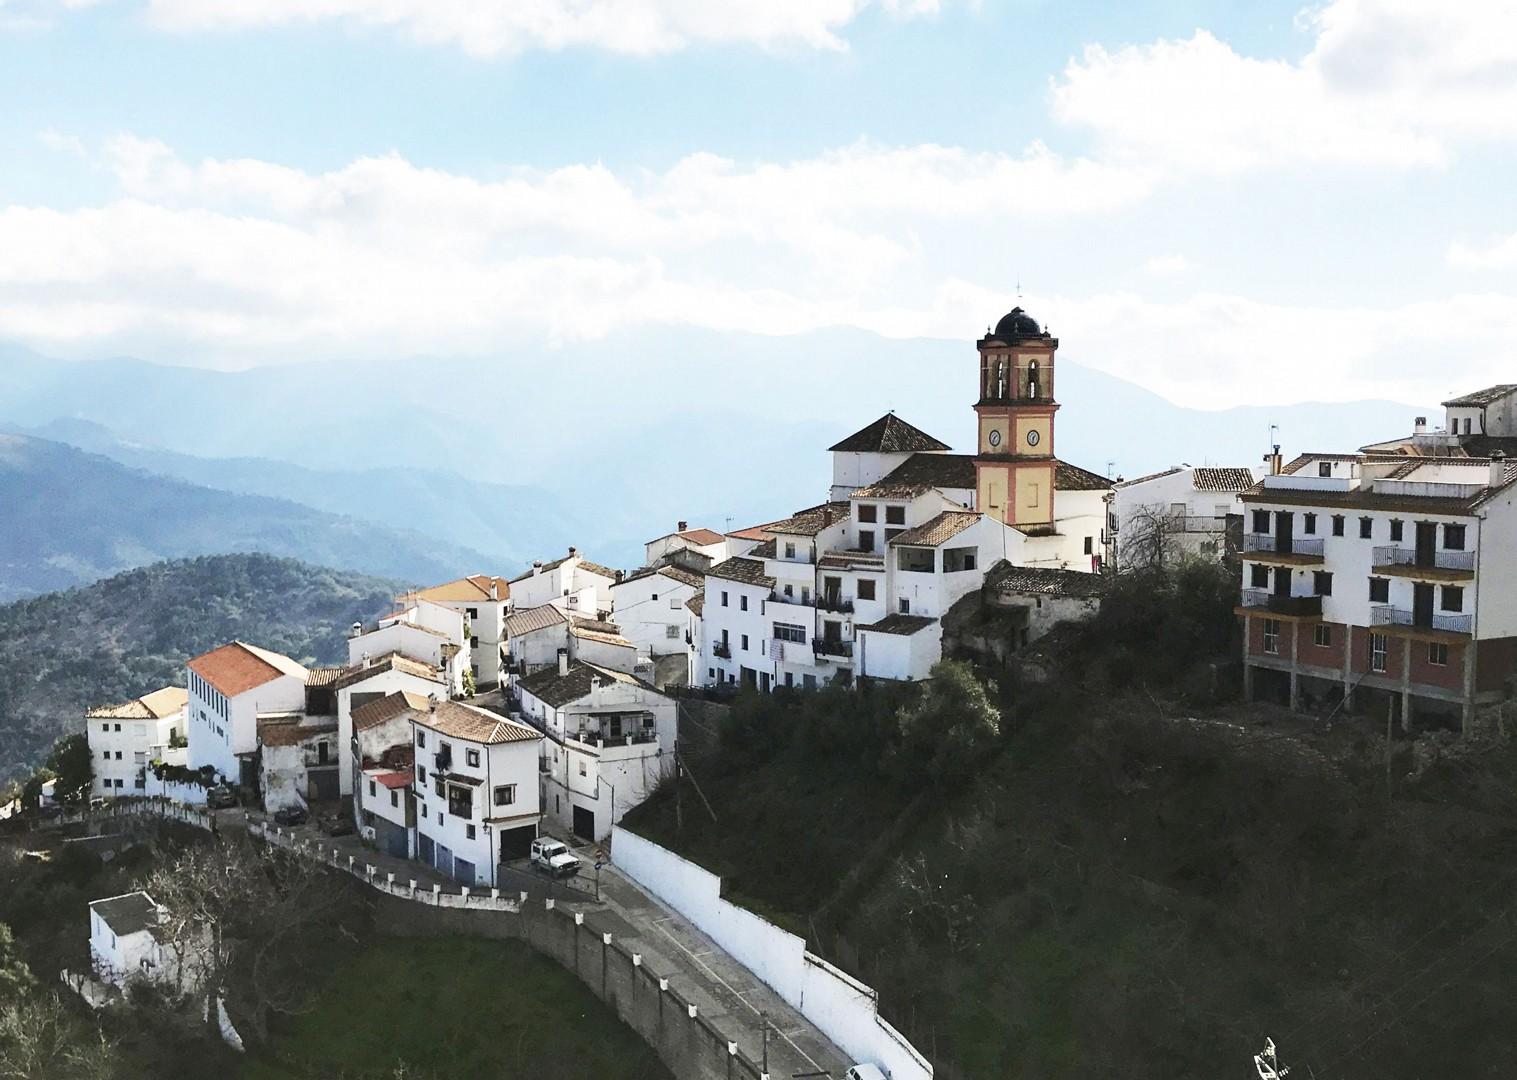 Serrania-de-Ronda-cycle-white-villages-self-guided-road-cycling-holiday-los-pueblos-blancos-andalucia-spain.jpg - Southern Spain - Andalucia - Los Pueblos Blancos - Self-Guided Road Cycling Holiday - Road Cycling